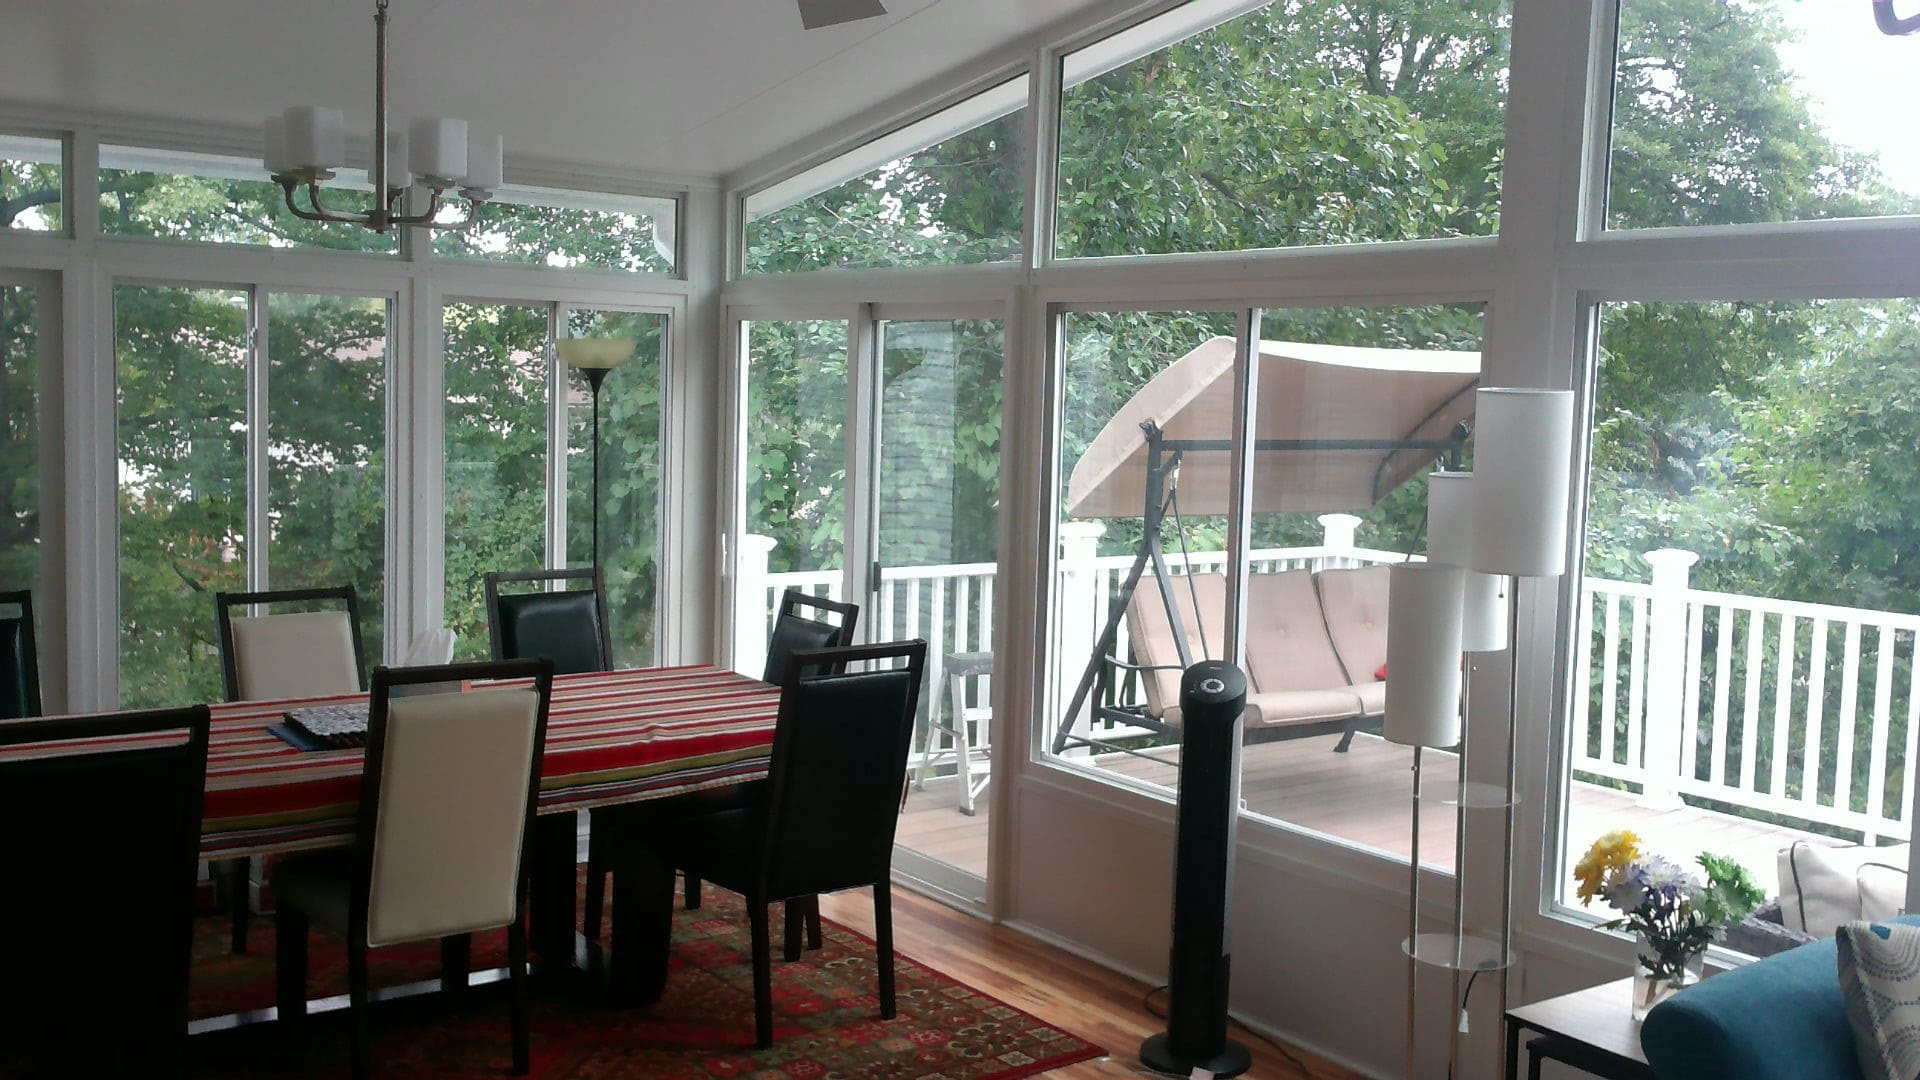 Yonkers NY Gable Roof Sunroom by NY NJ Sunrooms and Additions